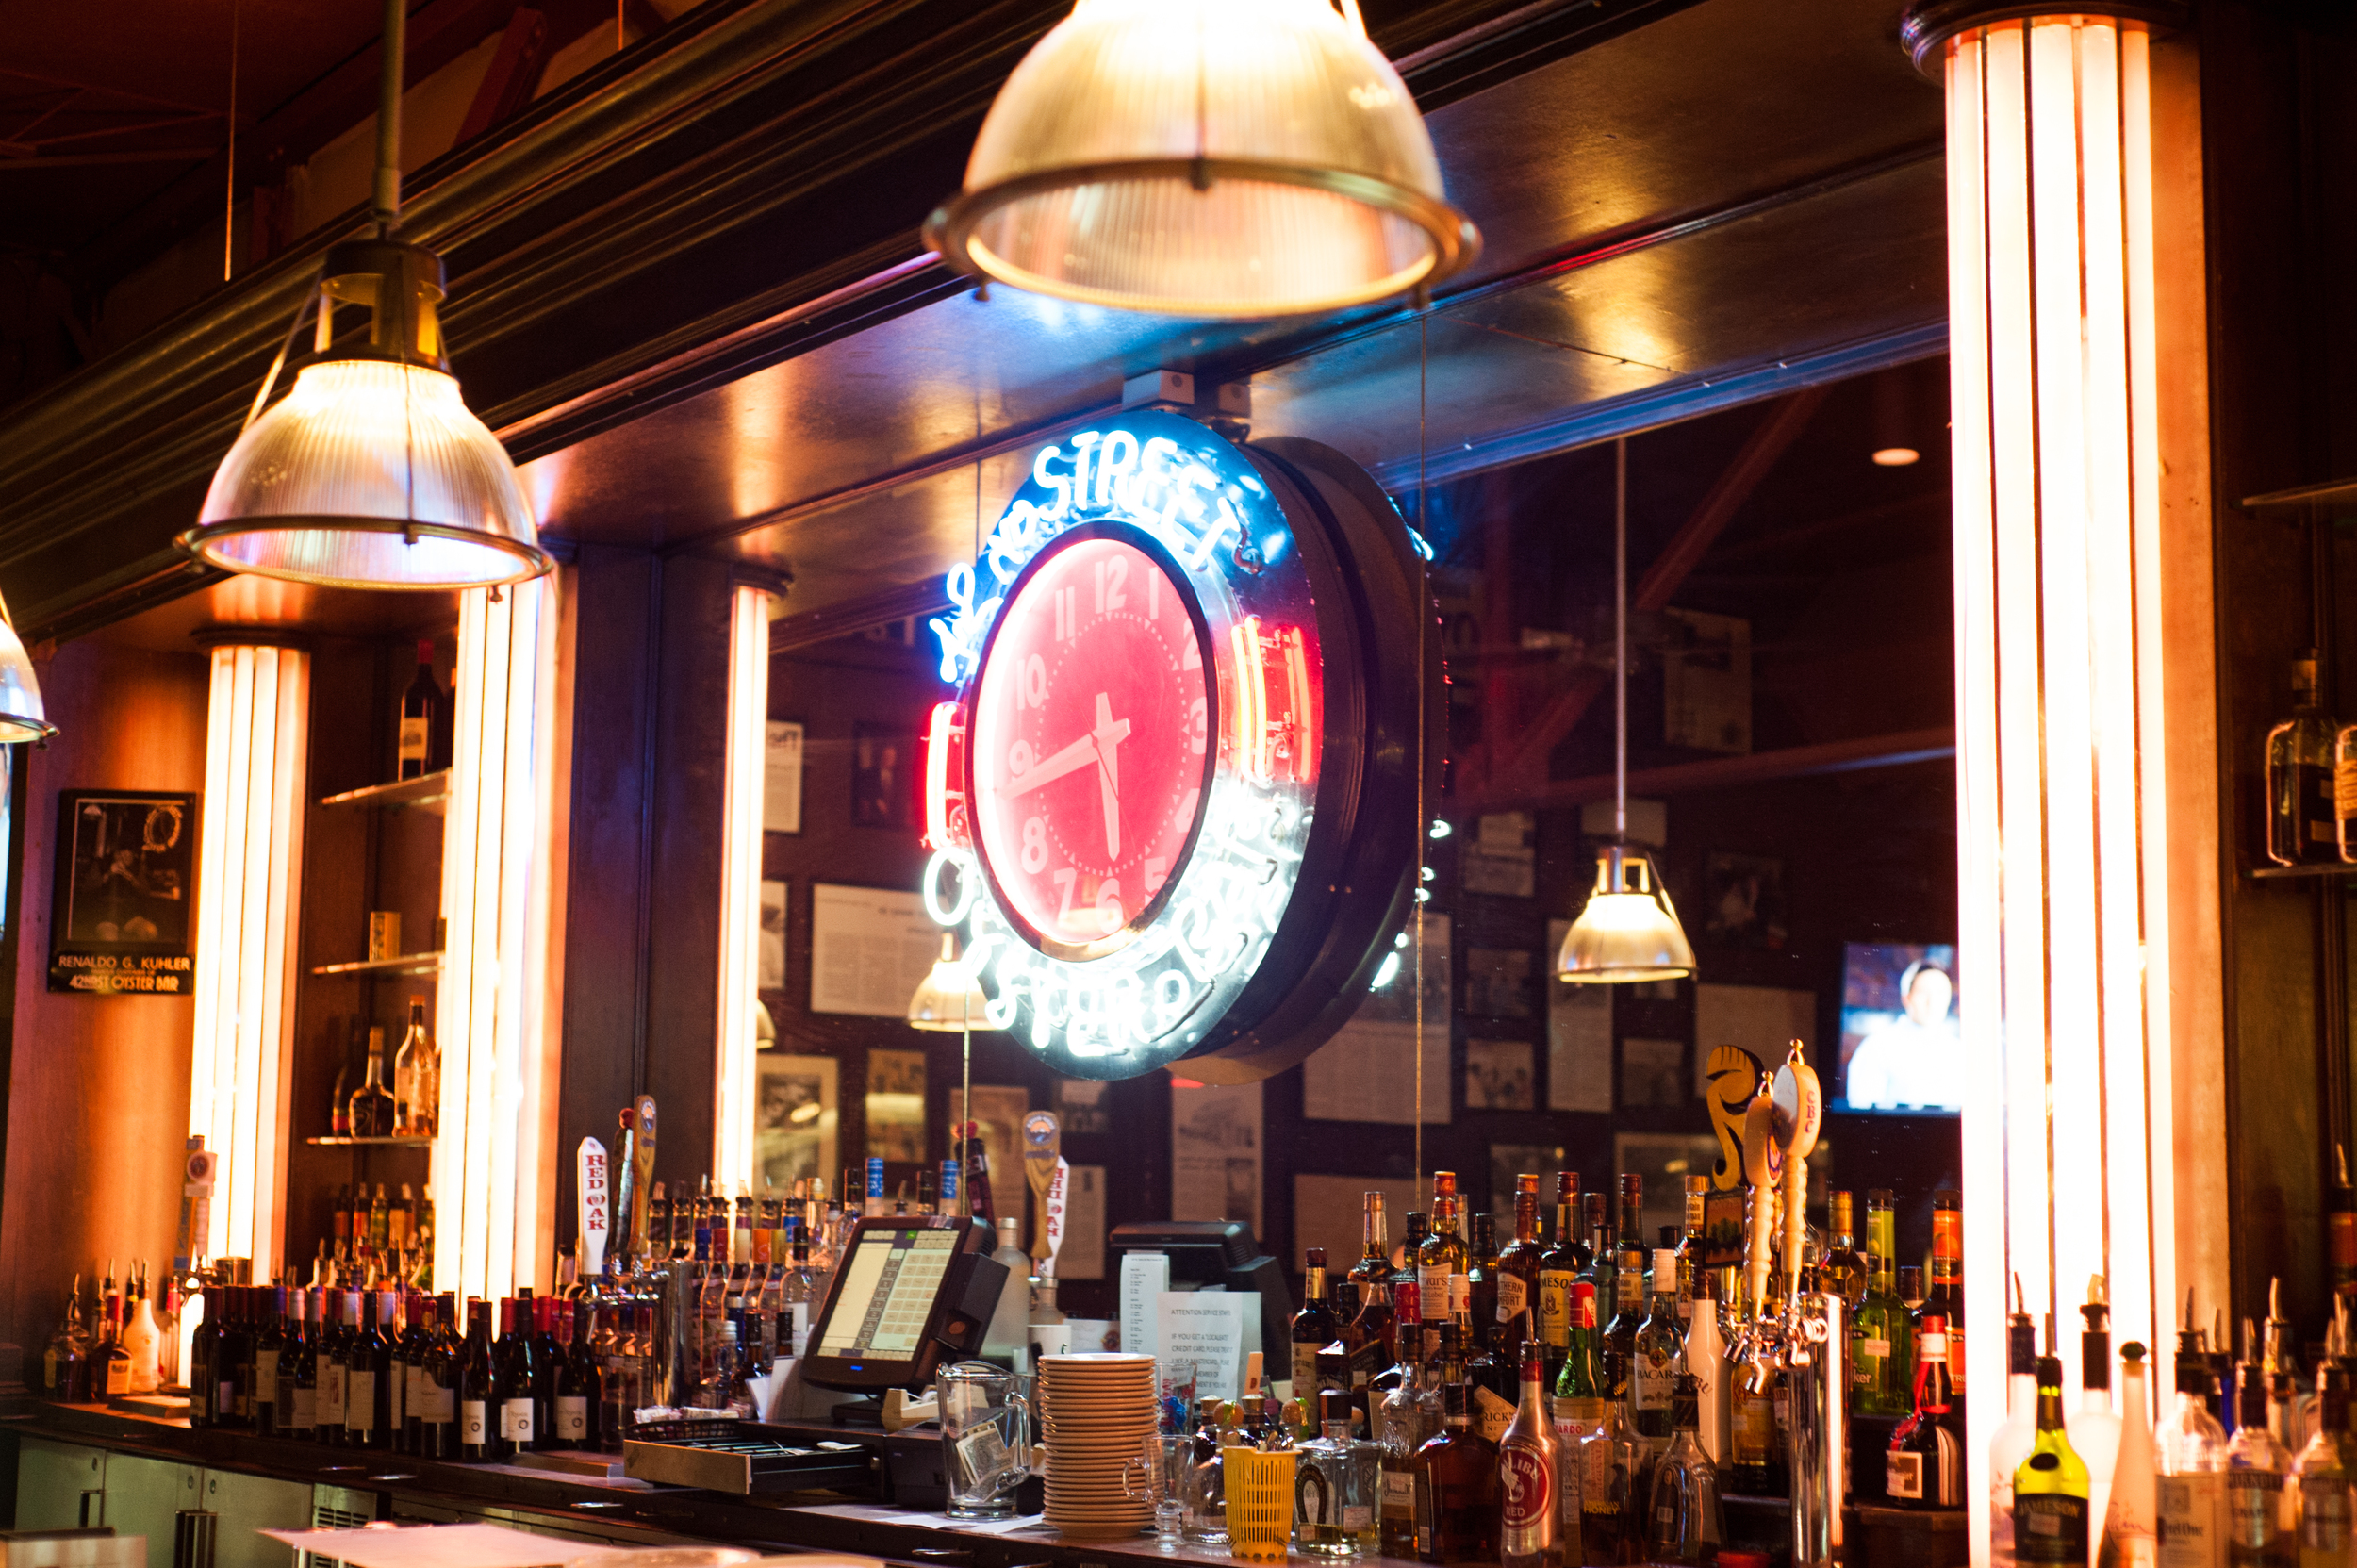 Been to 42nd St Oyster Bar & Seafood Grill? Share your experiences!